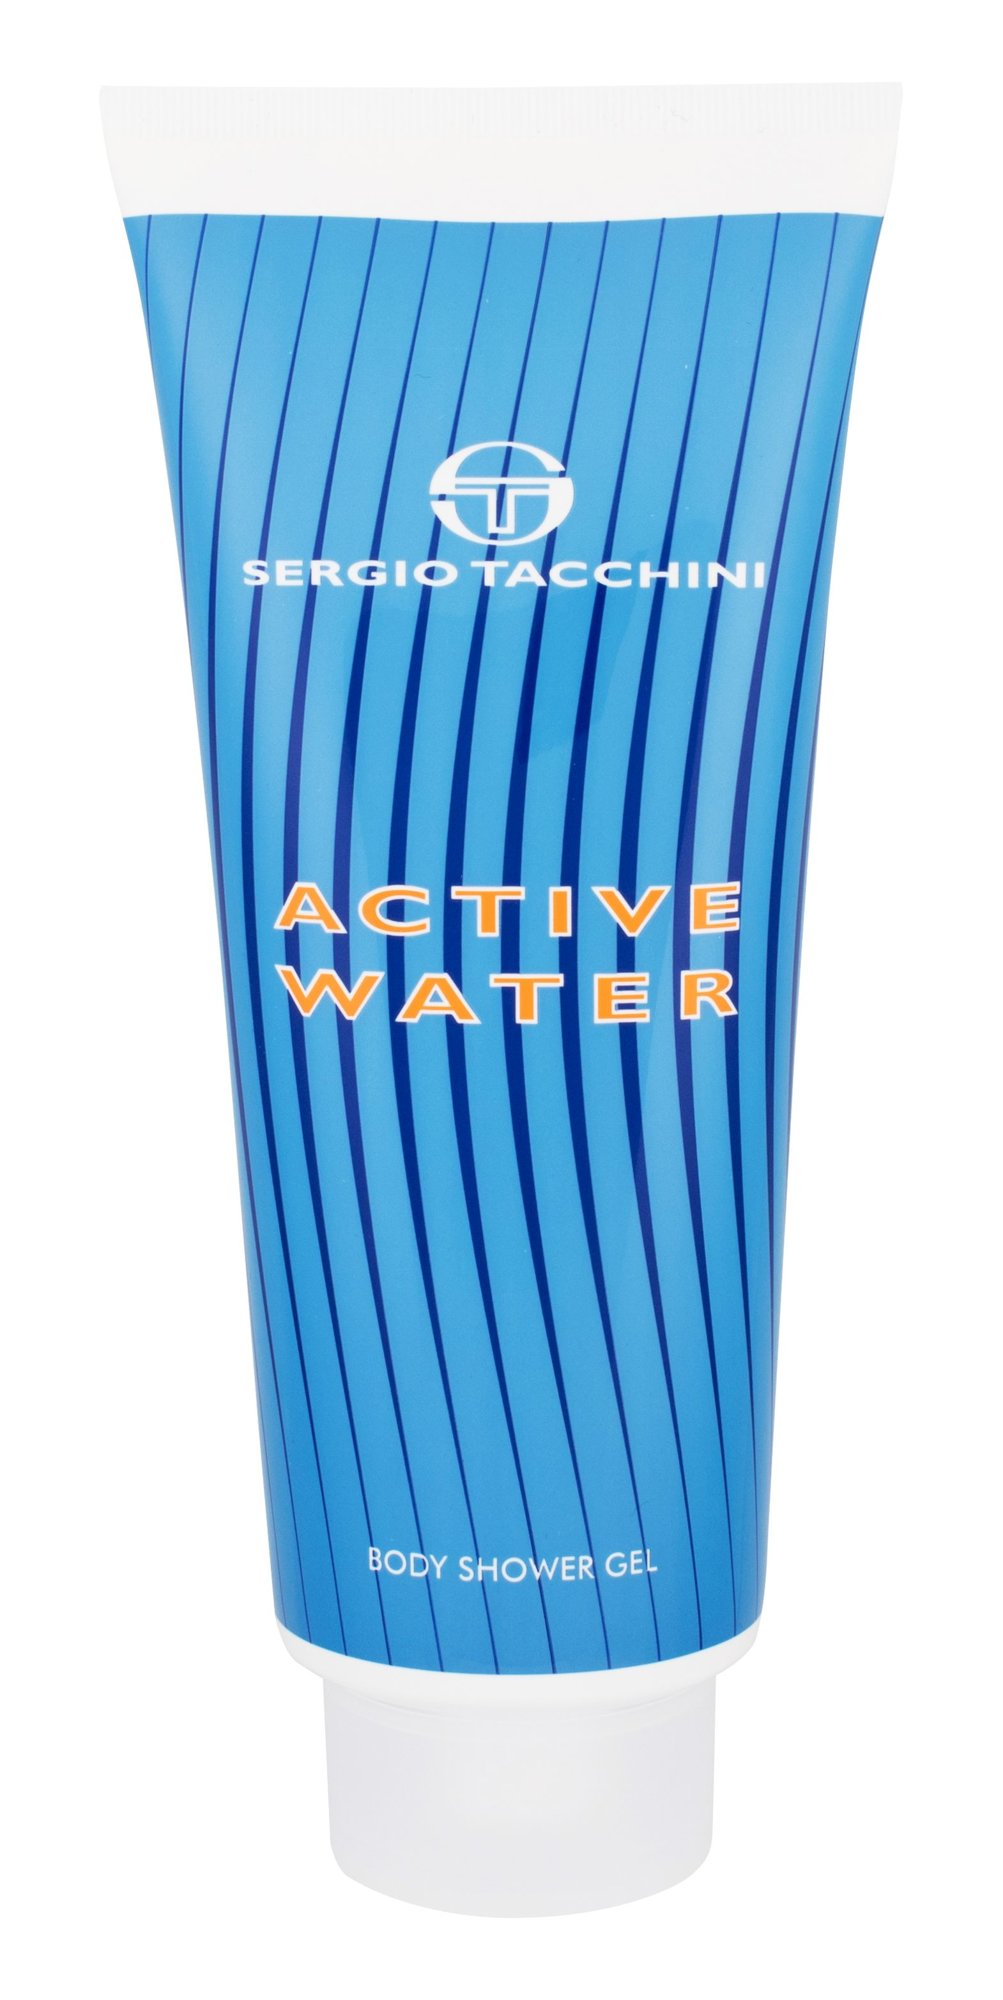 Sergio Tacchini Active Water Shower gel 400ml